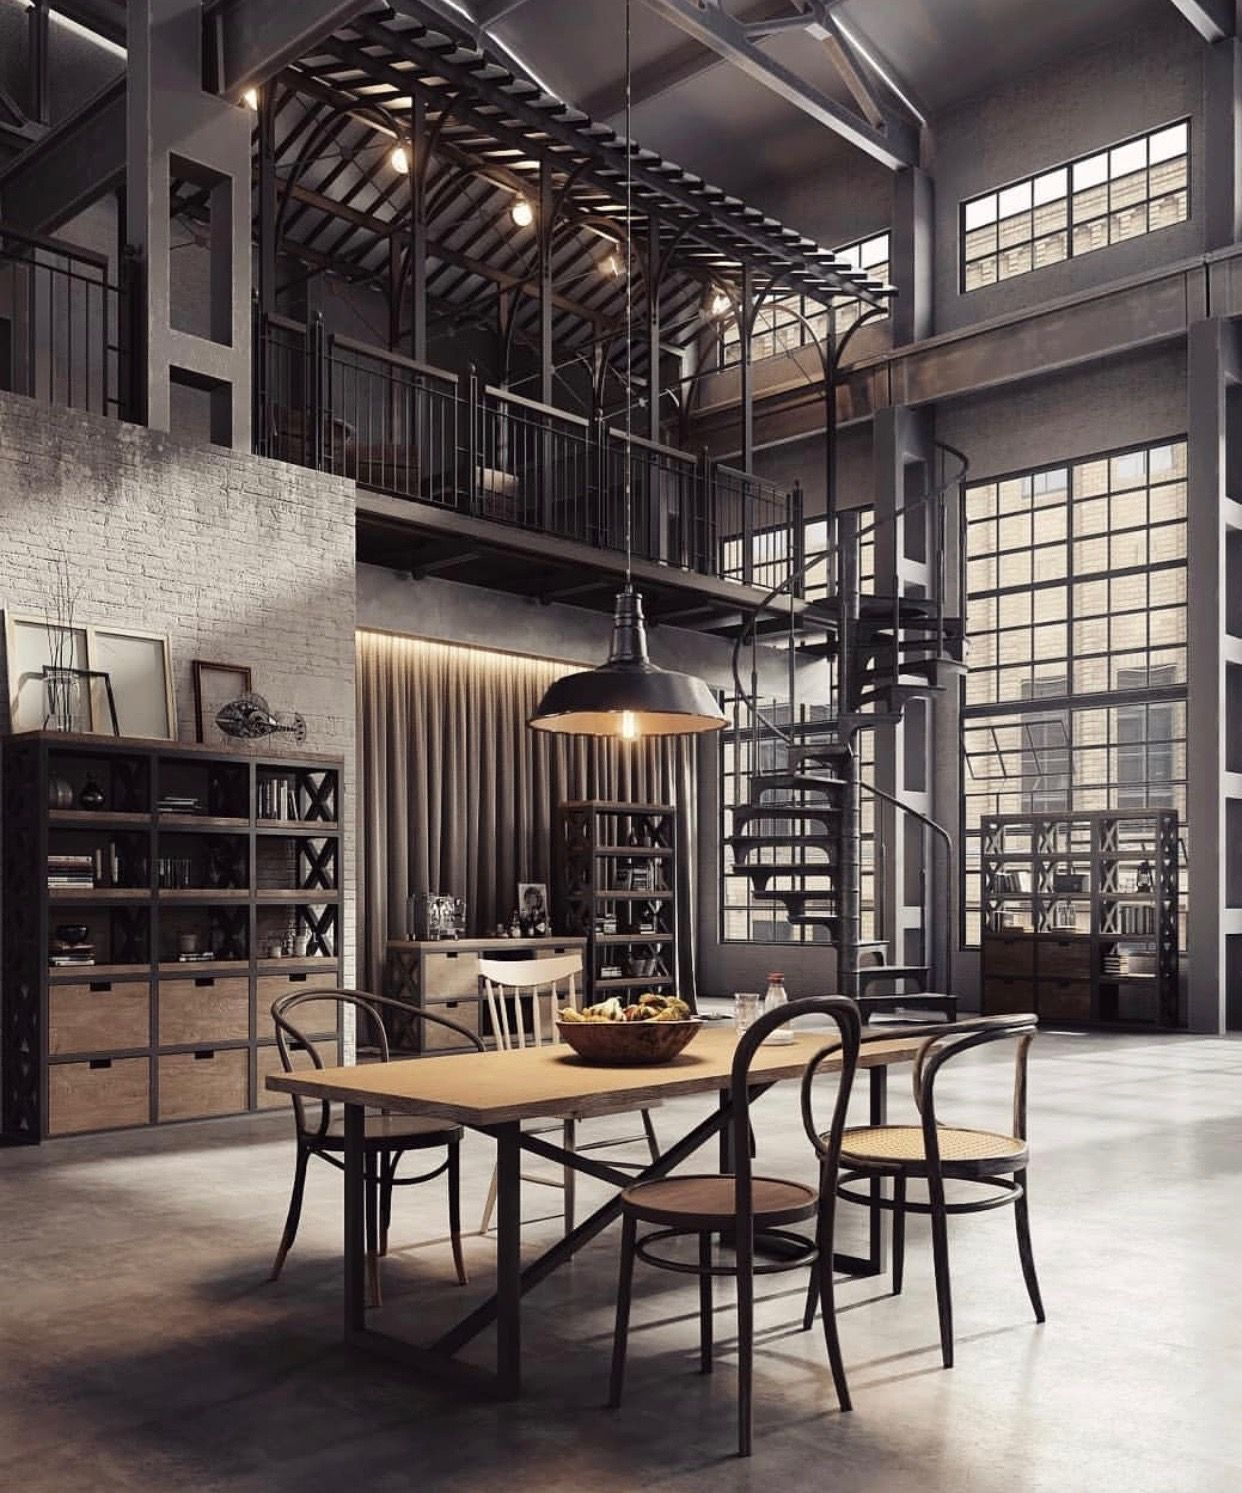 3 Stunning Industrial Lofts To Inspire You Industrial Loft Design Industrial Interior Design Loft Design